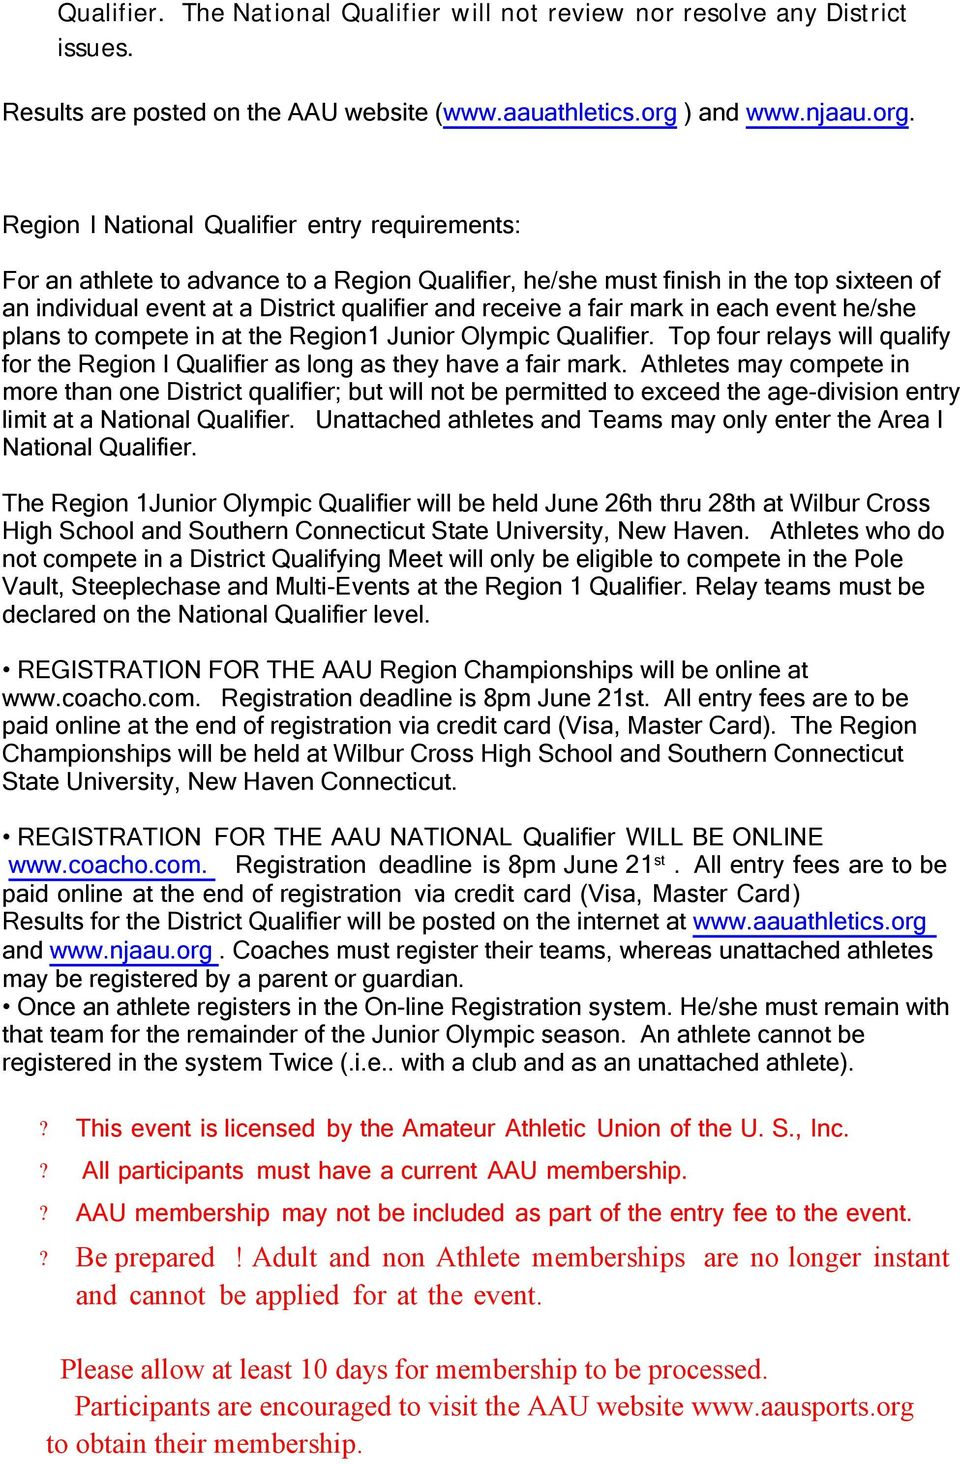 Region I National Qualifier entry requirements: For an athlete to advance to a Region Qualifier, he/she must finish in the top sixteen of an individual event at a District qualifier and receive a